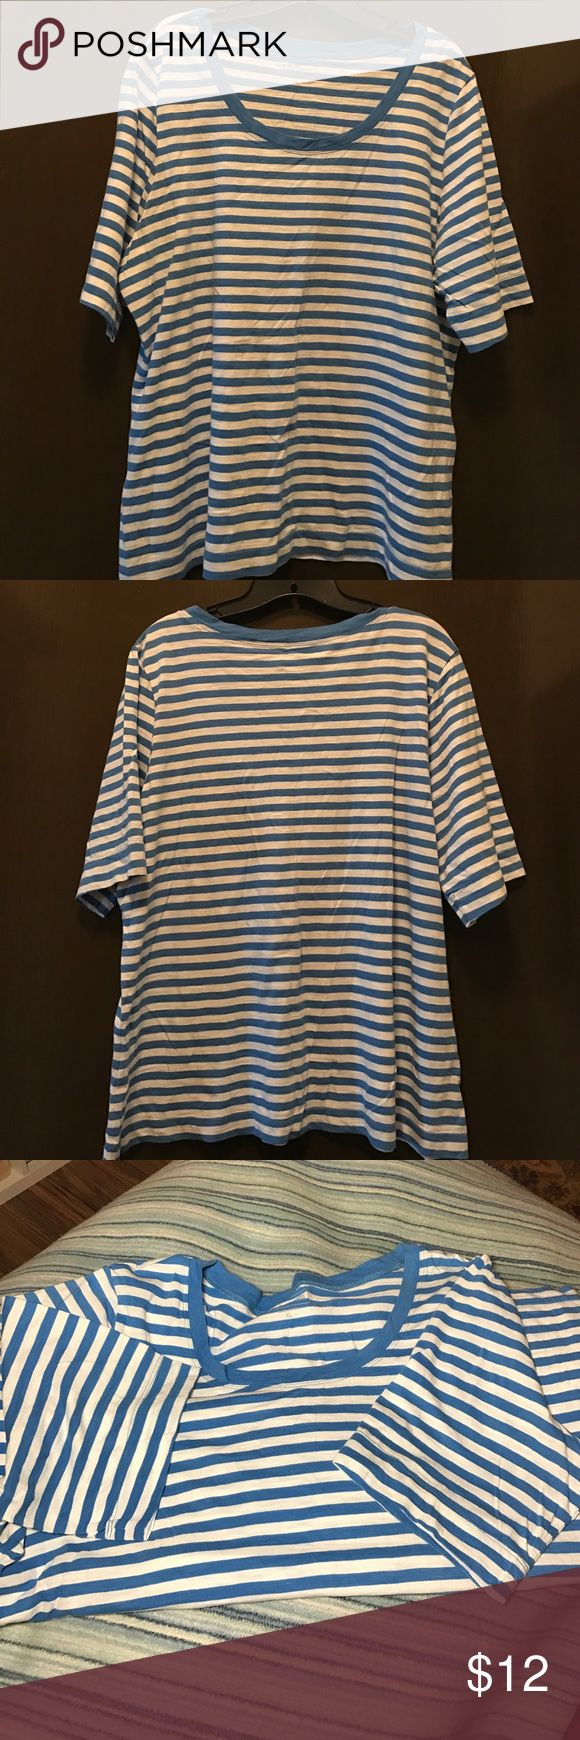 """LLBean blue and white sailor t-shirt ⚓️⚓️Classic LLBean sailor Tahiti in blue and white. Too small for me, more a 1X size. Sleeves are short above elbow and mid back is approx 26"""" long.⛵️⚓️ L.L. Bean Tops Tees - Short Sleeve"""